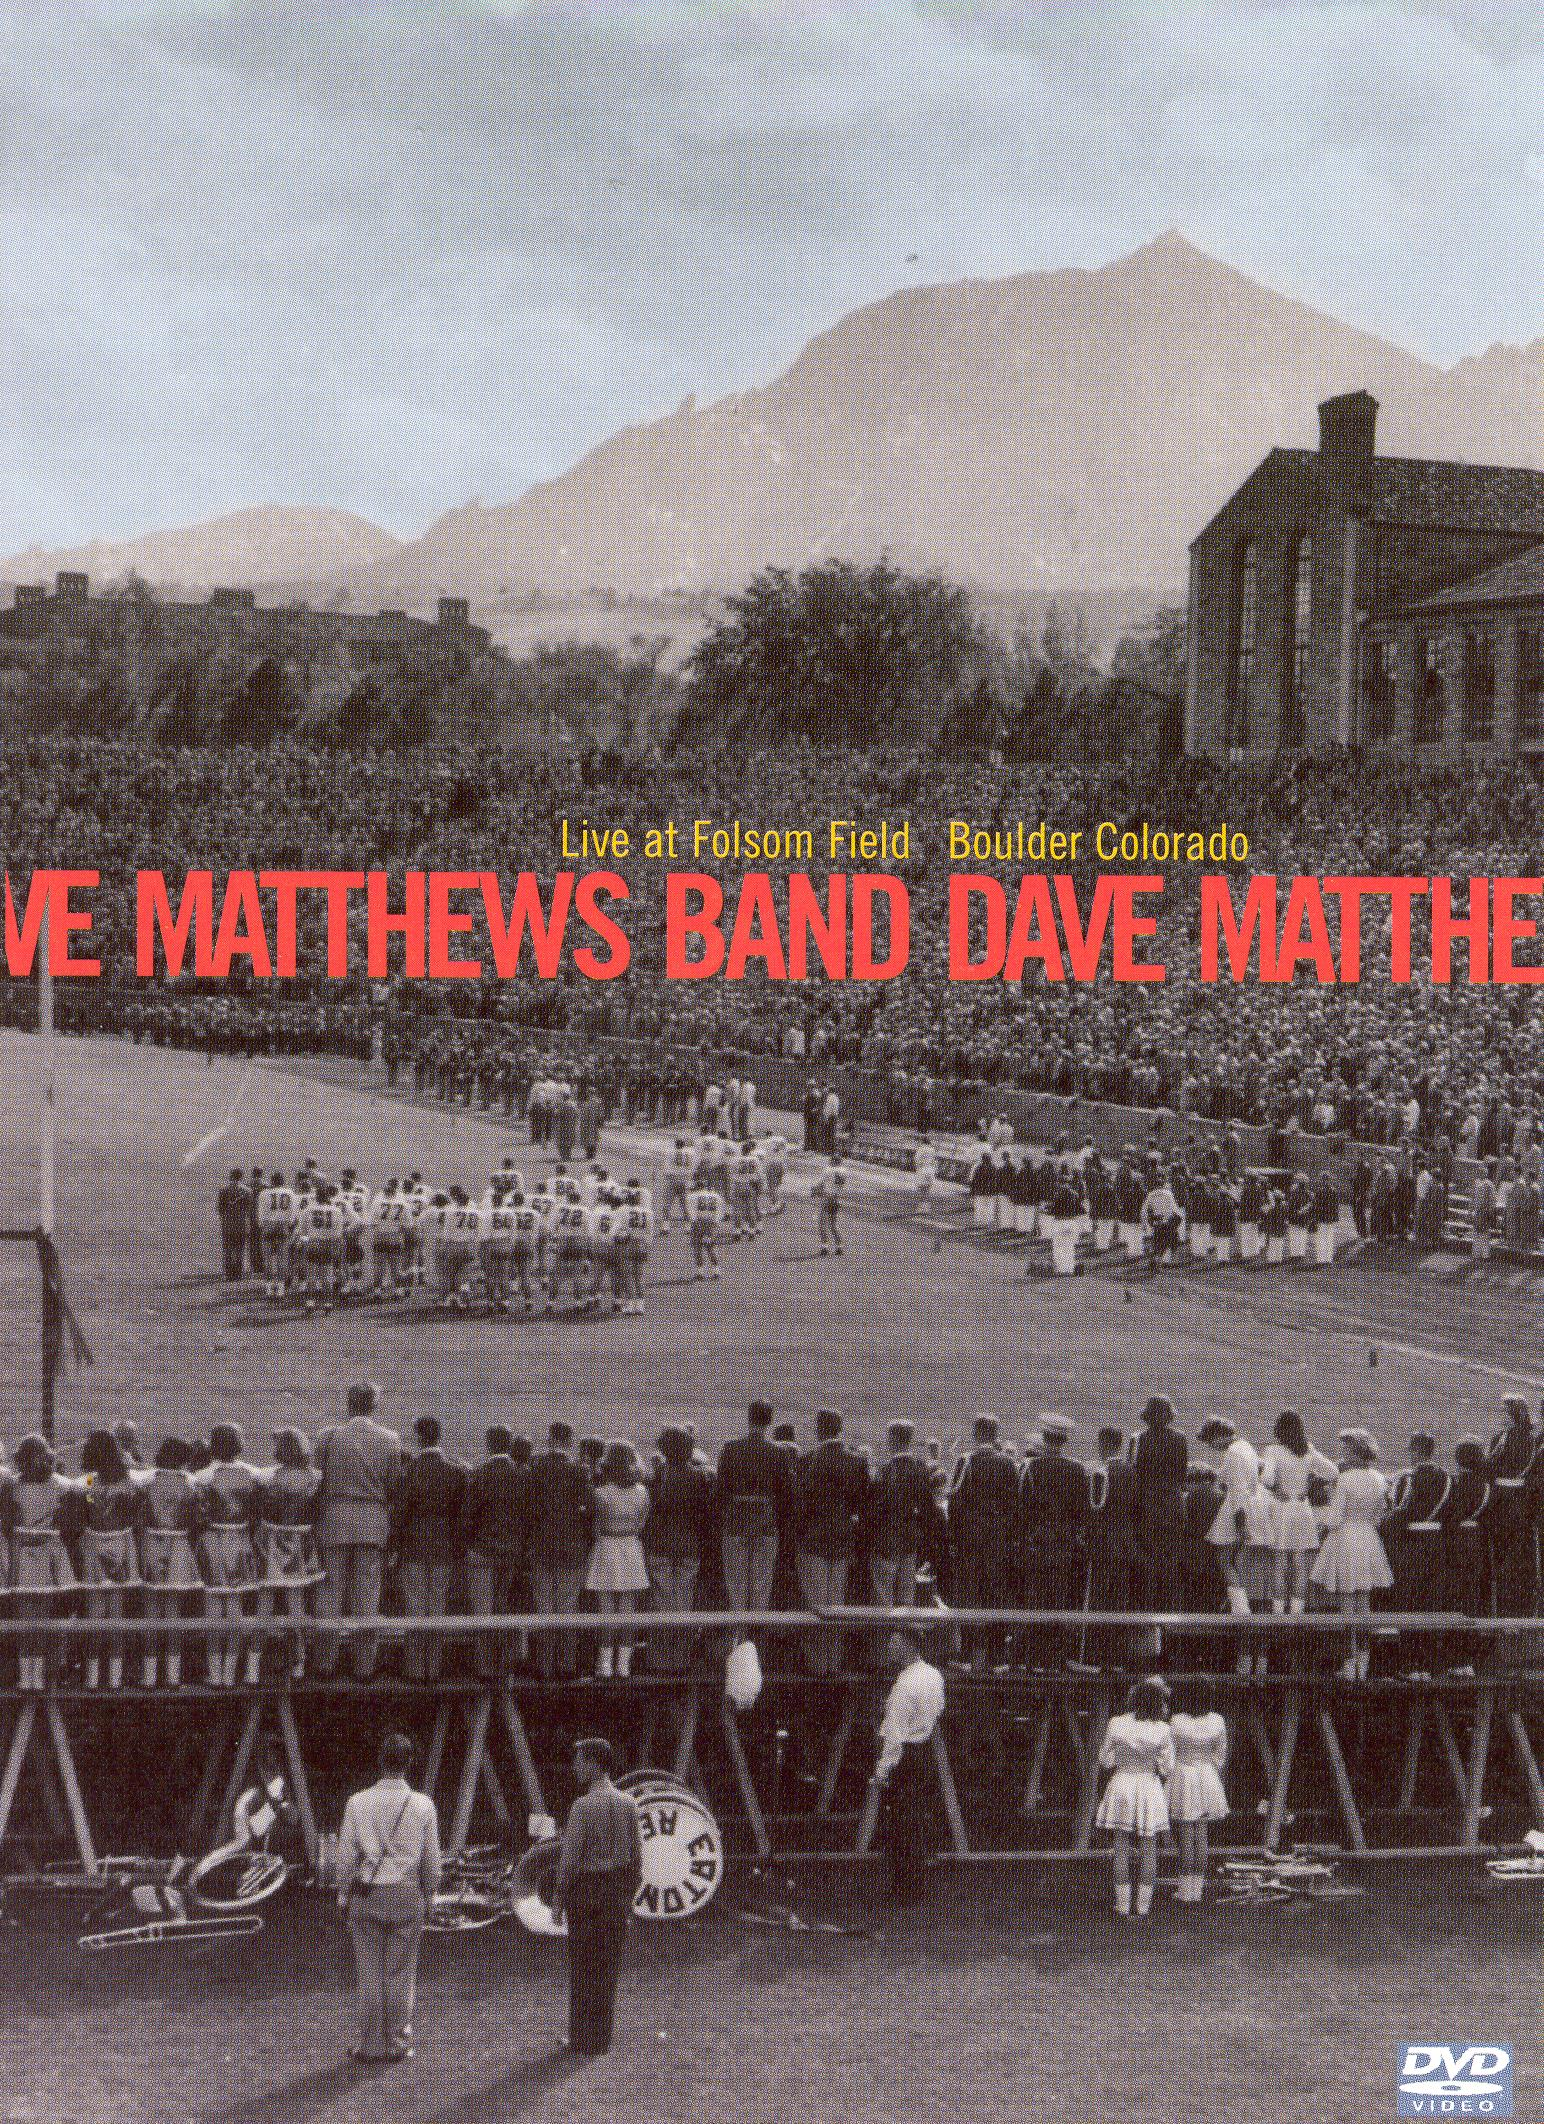 The Dave Matthews Band: Live at Folsom Field